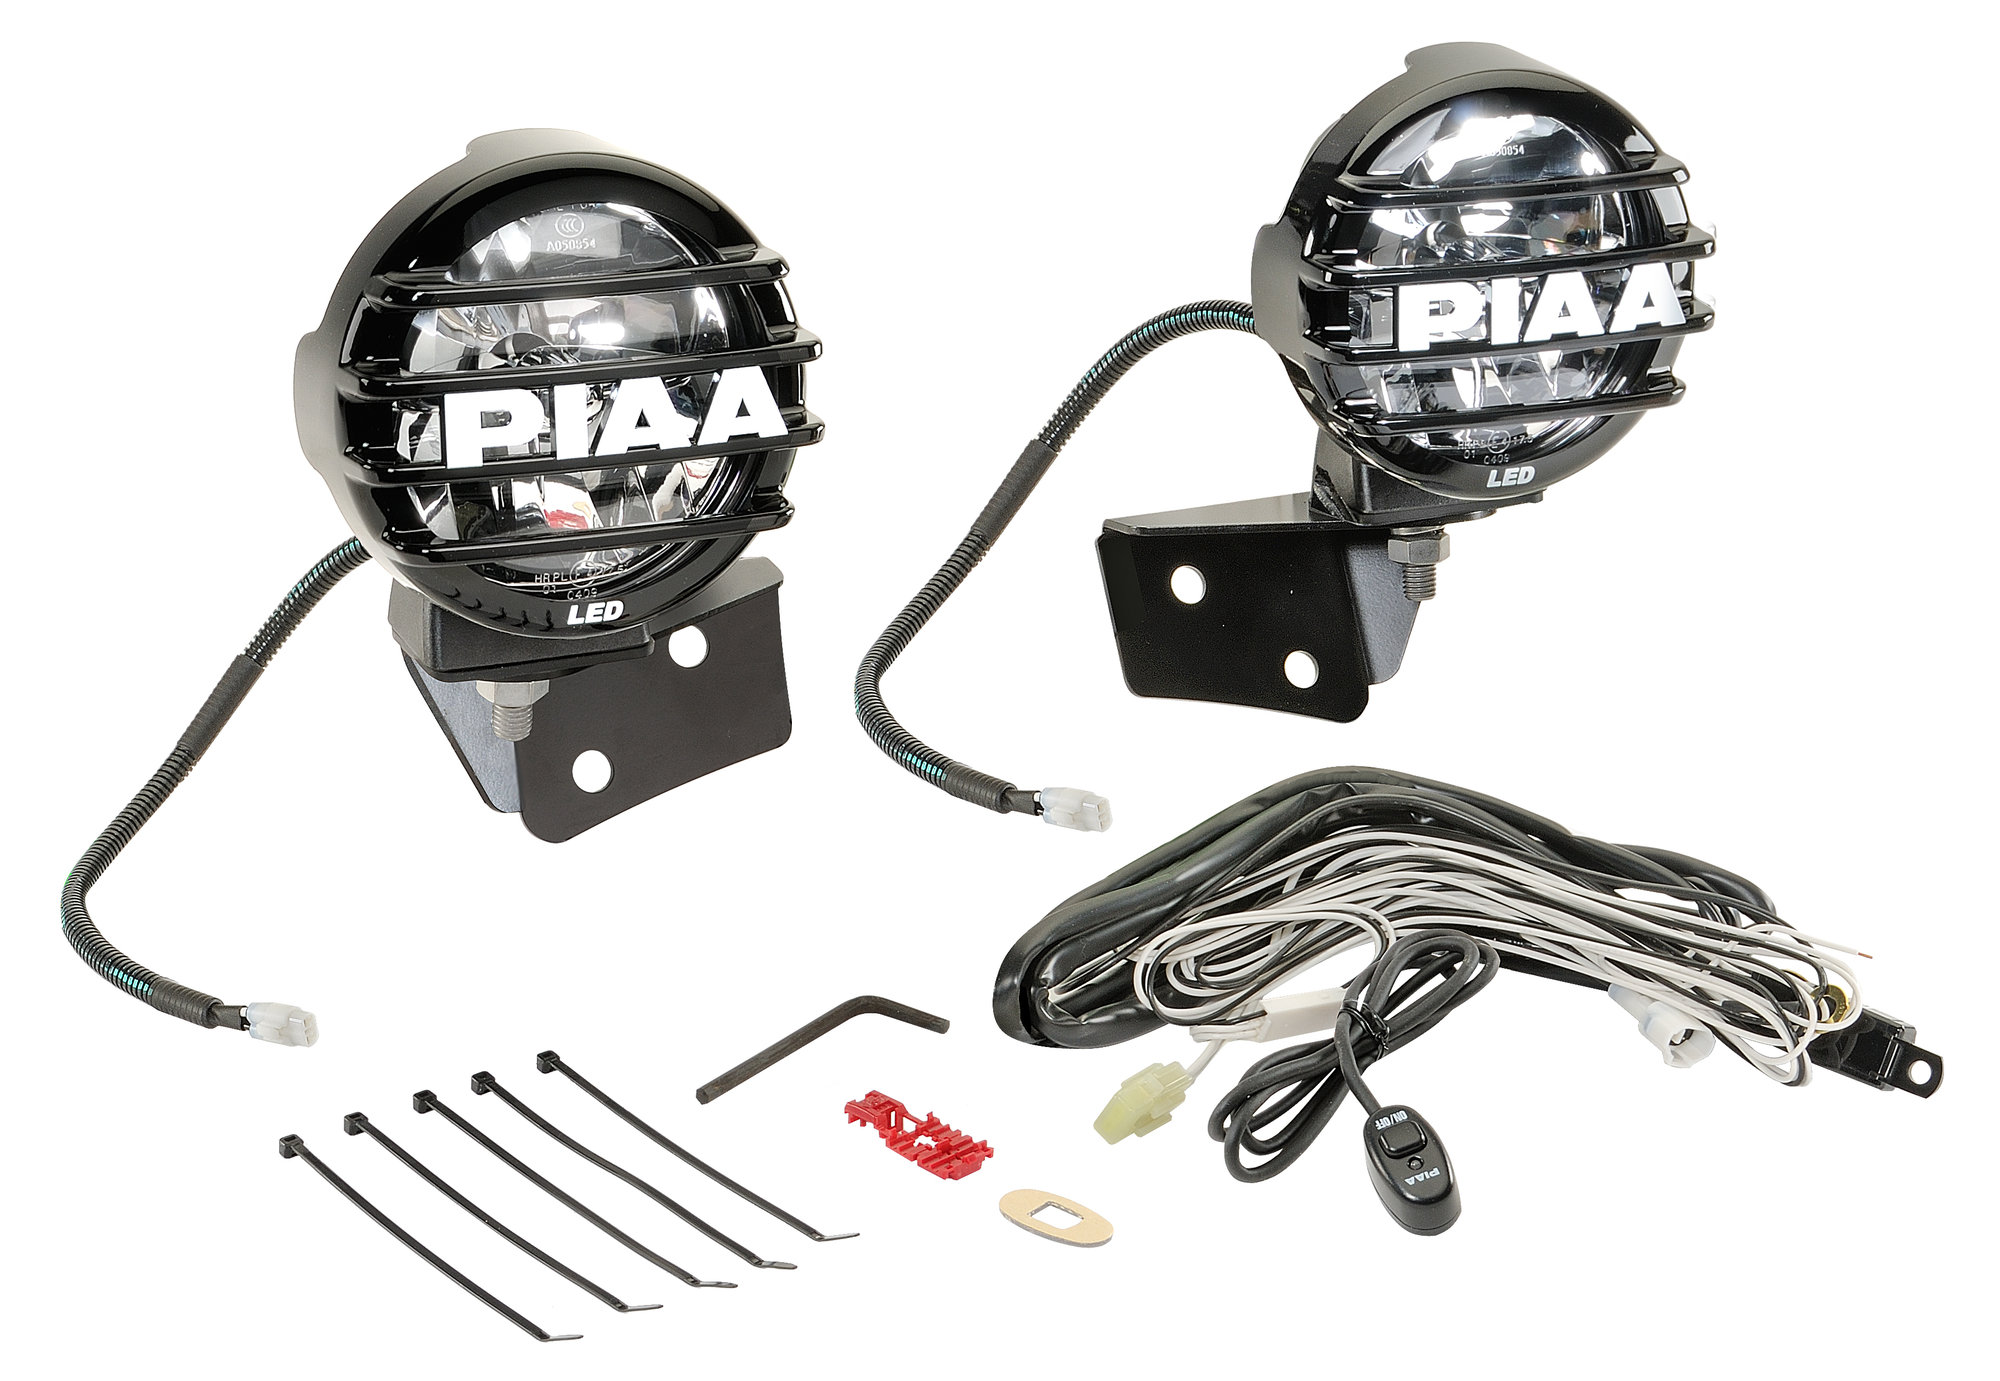 Piaa Lp550 Series 5 5 Led Lamps With Windshield